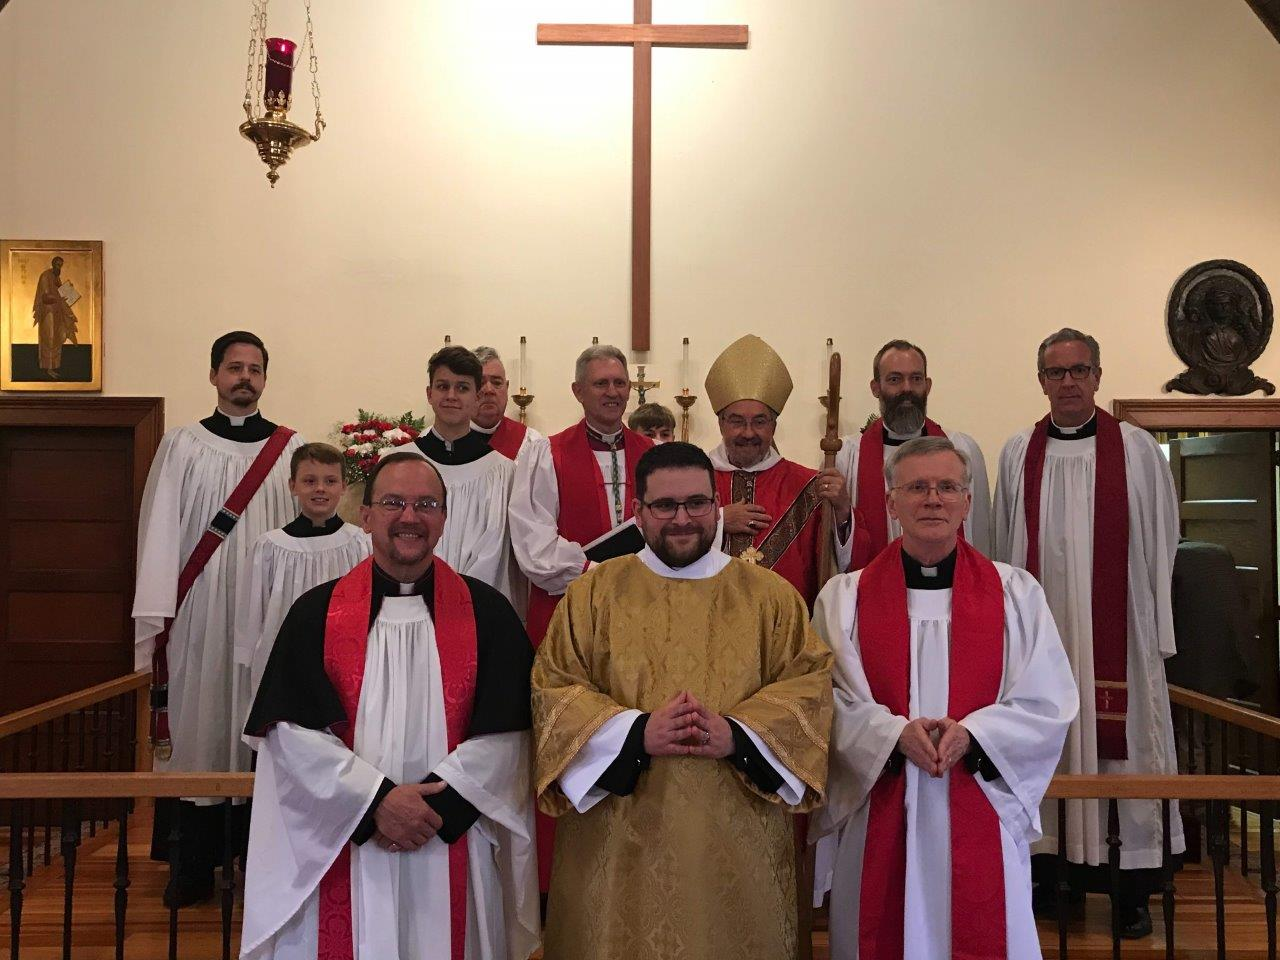 Deacon Miller, Altar Party & Visiting Clergy